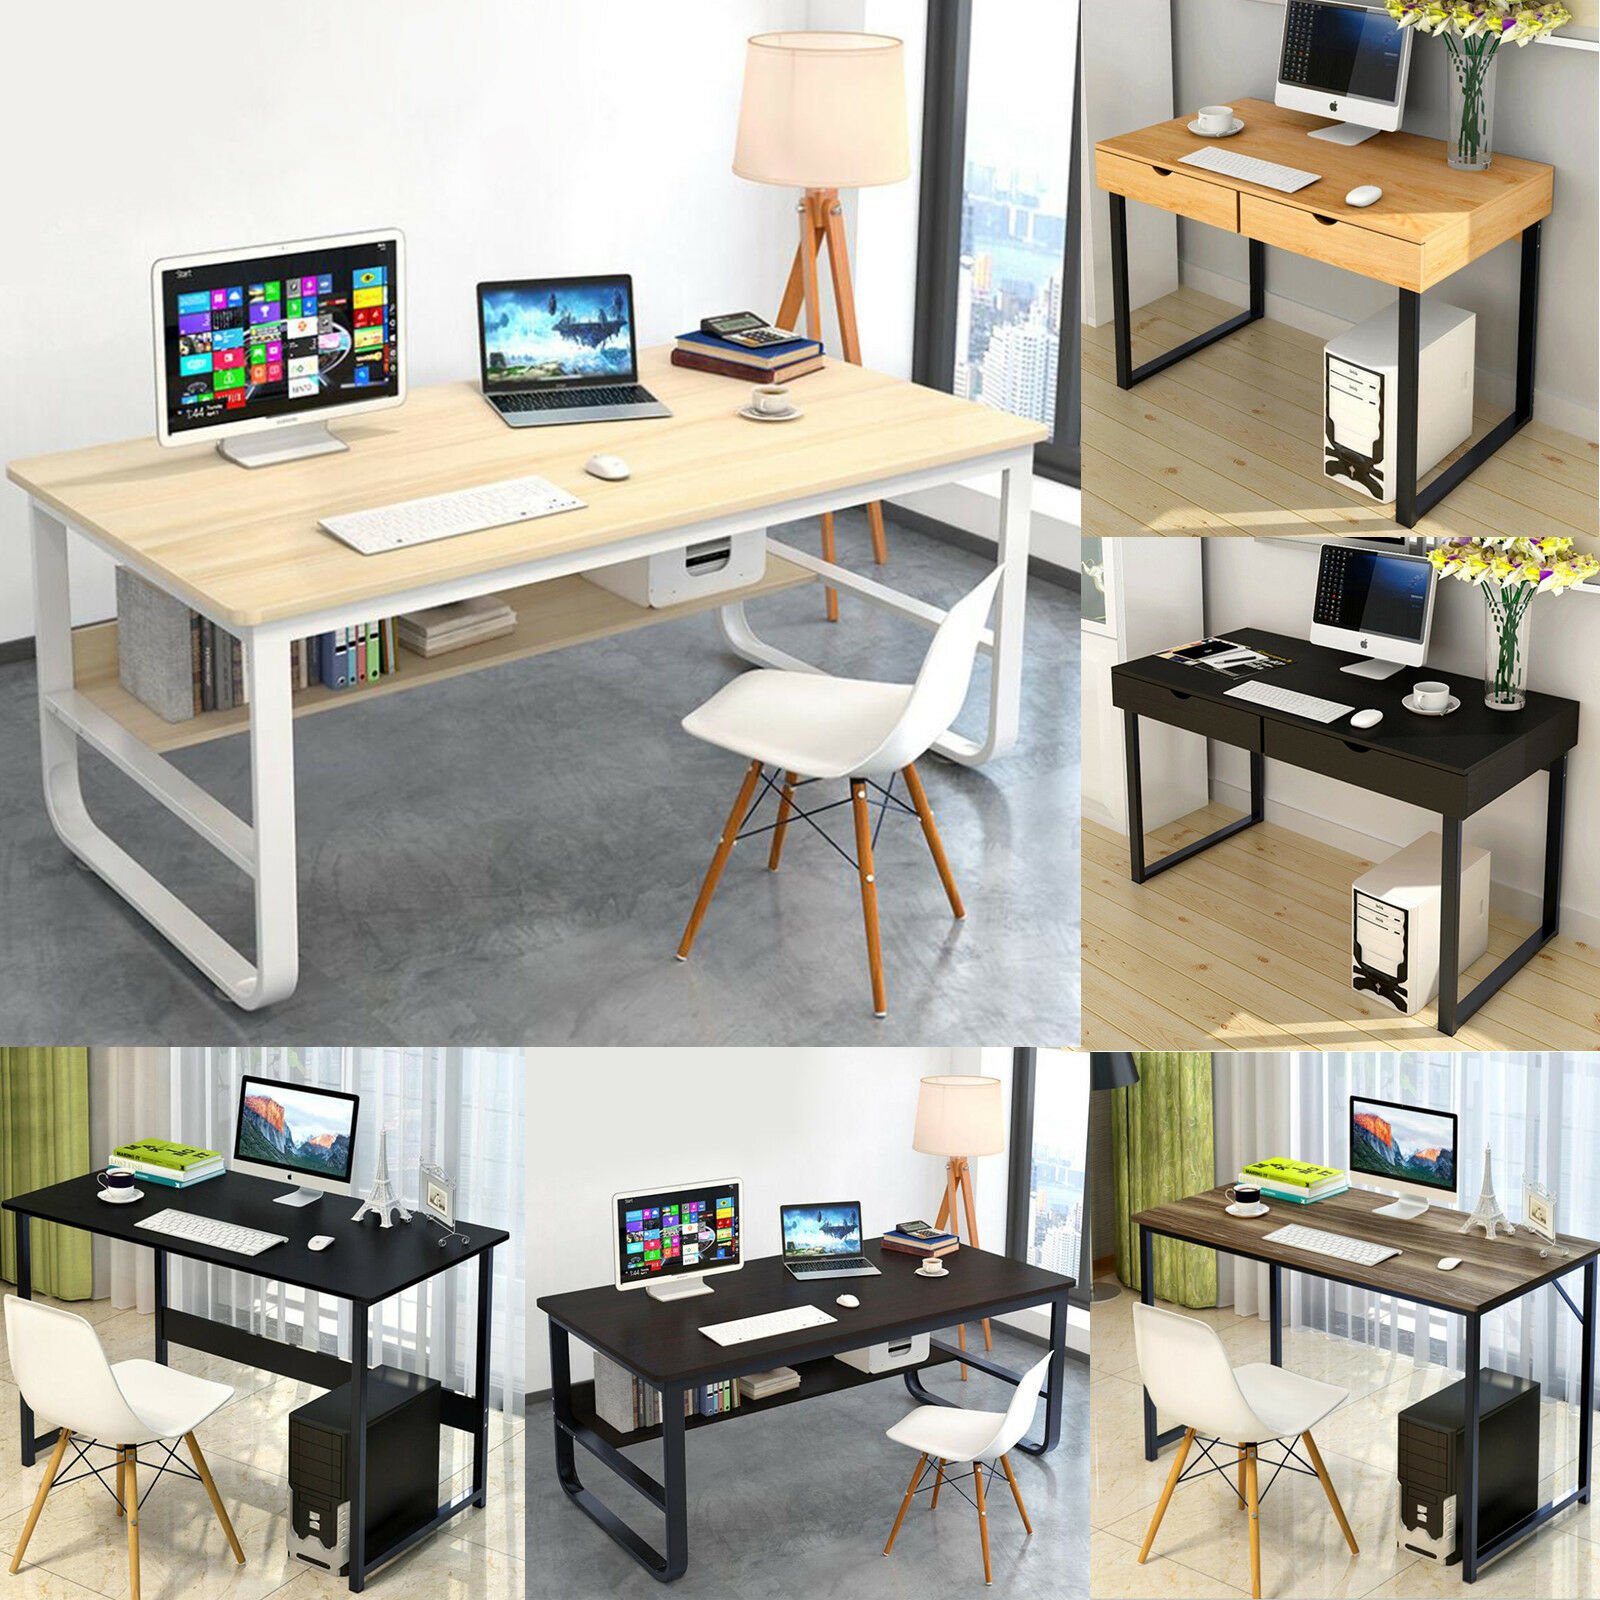 Home Computer Desk Table Workstation Office Laptop PC Desktop Study Shelf Office With 2 Drawers / Bookshelf  2 Color